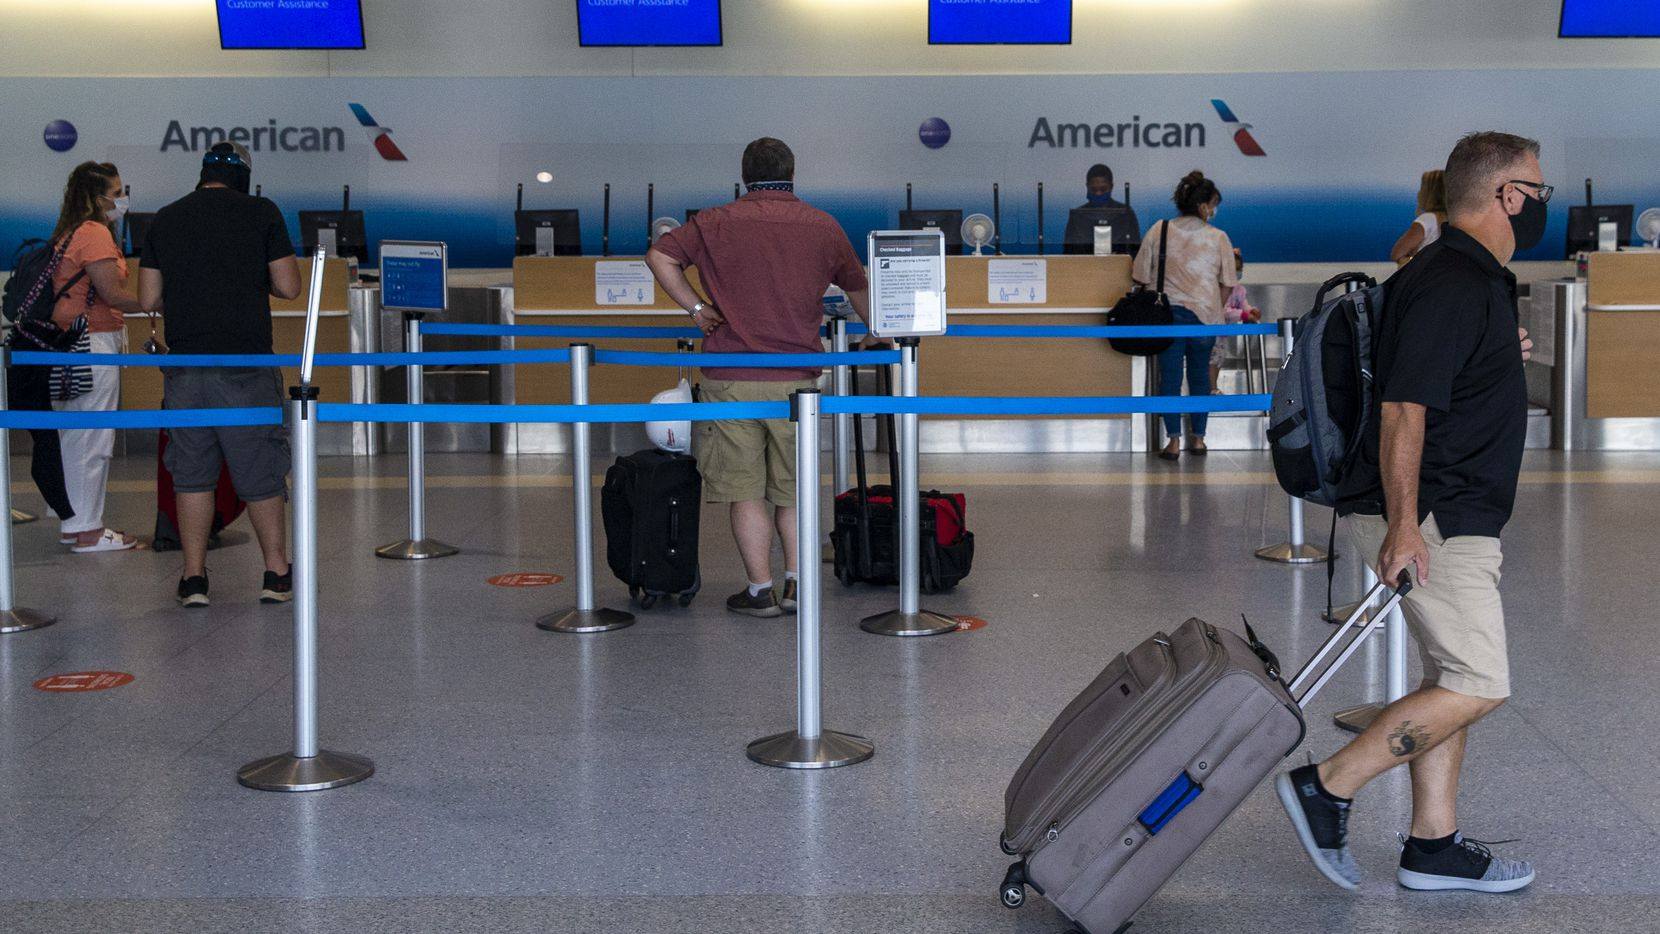 Masked passengers pass through Terminal A at DFW International Airport in Irving, Texas, on July 26, 2020.